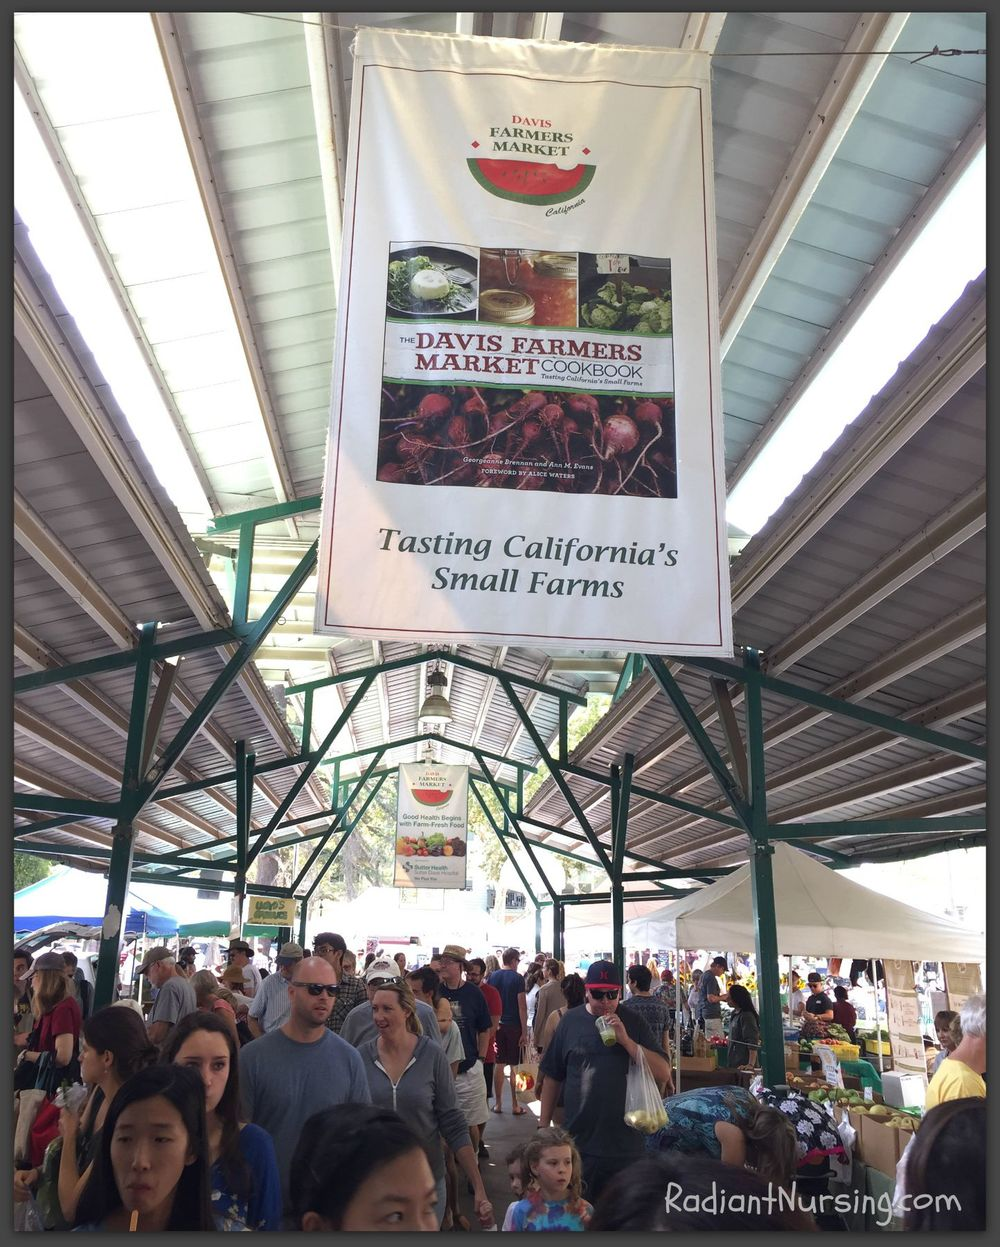 Davis Farmers Market in Davis, California offers a wide variety of seasonal and organic fruits, vegetables and foods.